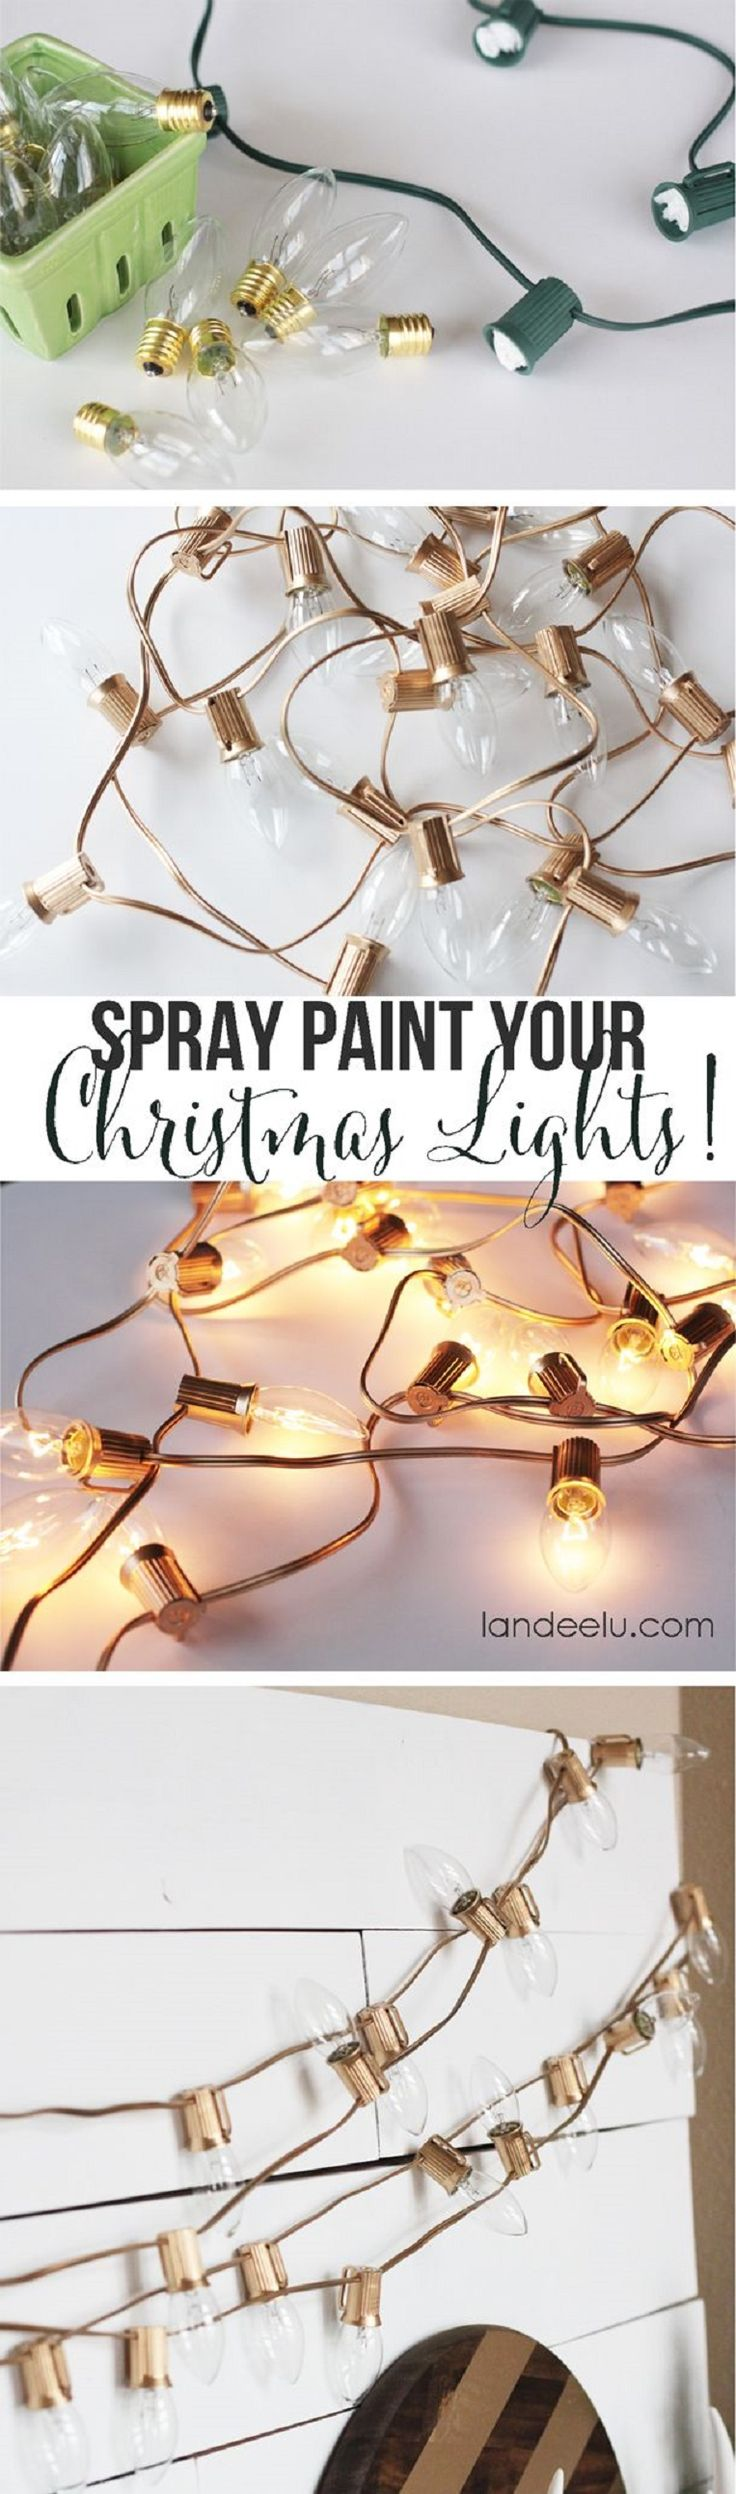 Spray Paint Your Christmas Lights - 12 DIY Holiday Decorations You Can Leave Up All Winter   GleamItUp